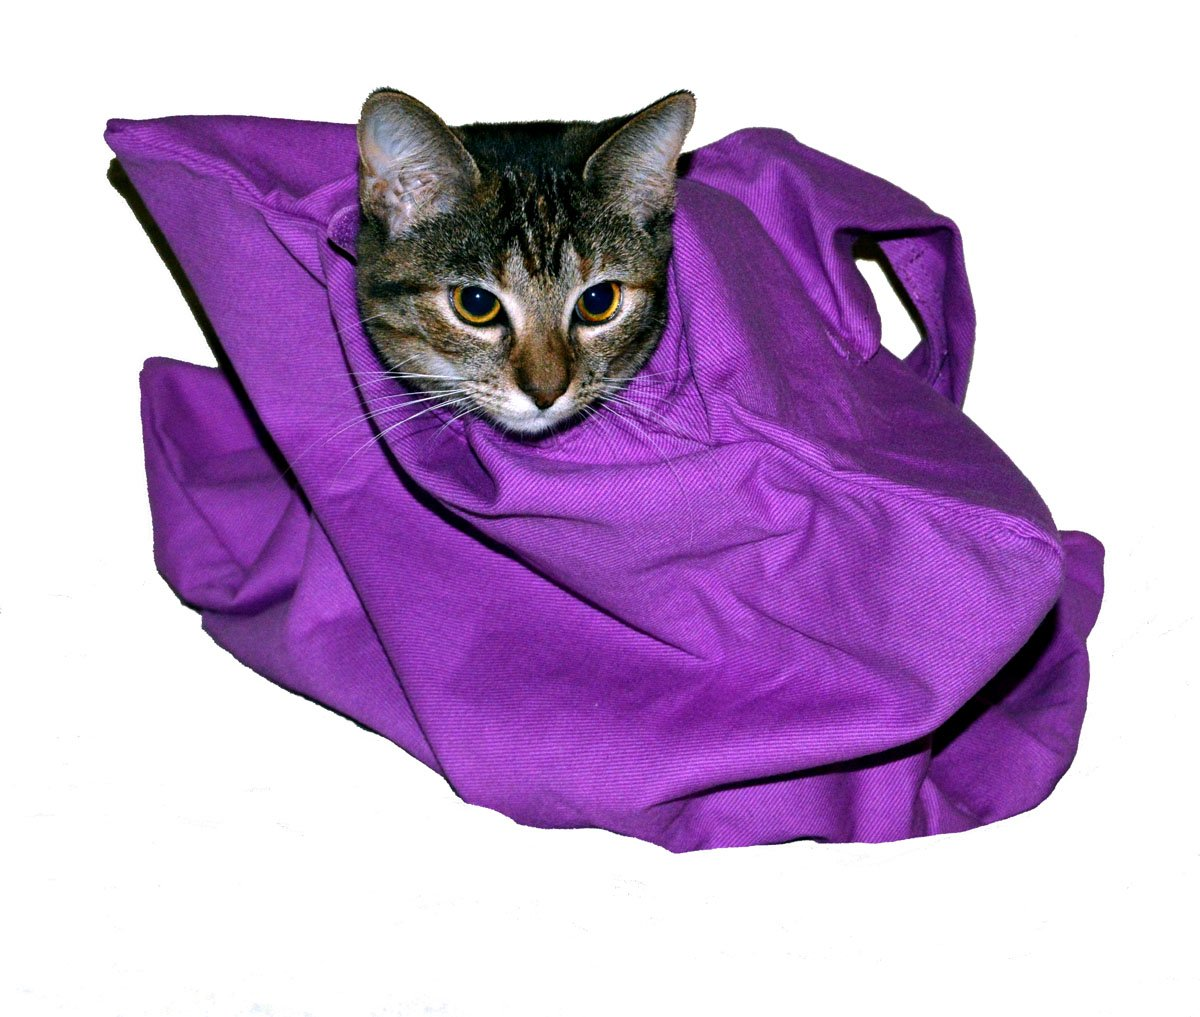 Lavender XL for large breed cats, long and lean, 20-36 lb. Lavender XL for large breed cats, long and lean, 20-36 lb. Cozy Comfort (E-Z Zip) Carrier  XL, Lavender